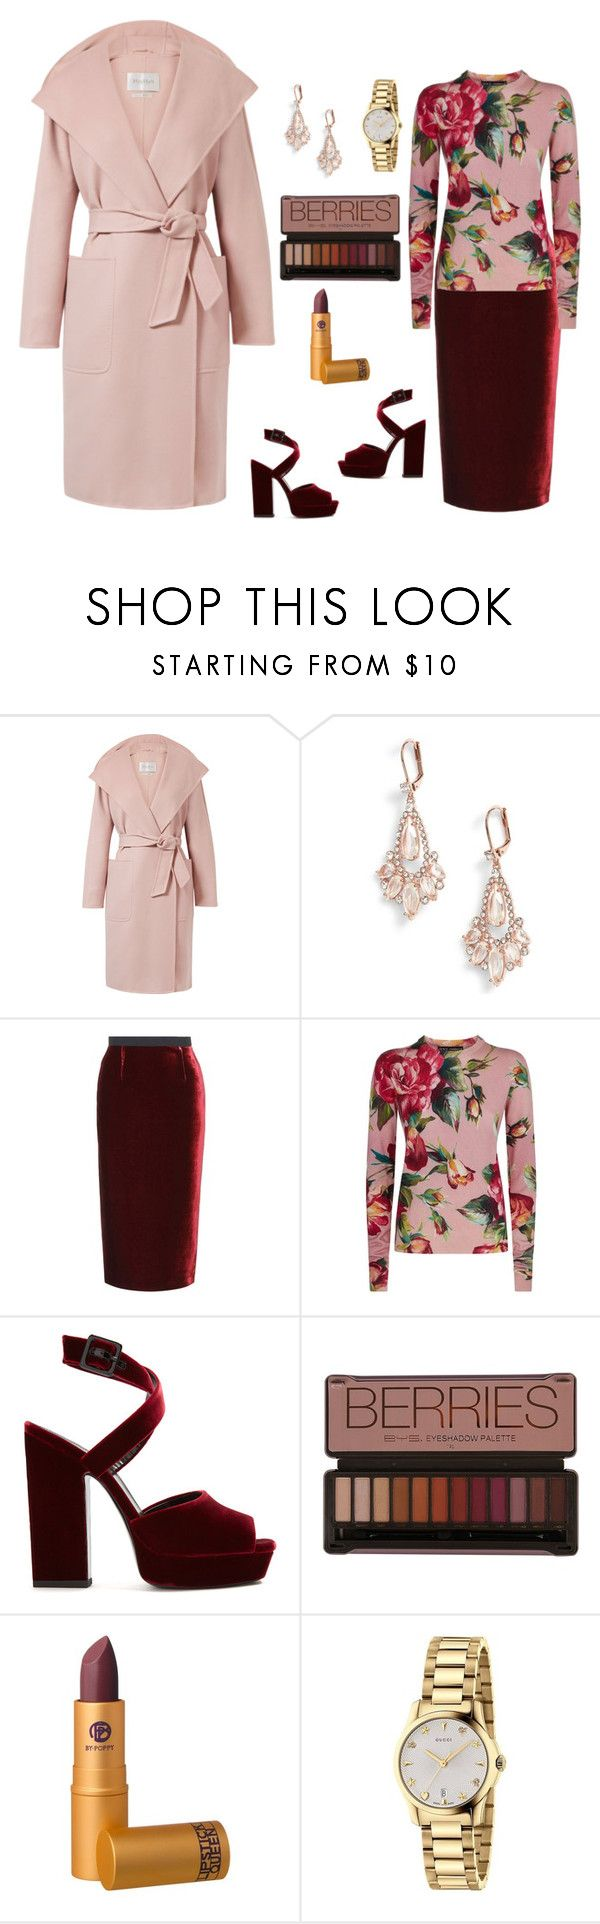 """Untitled #884"" by mamatoodie-1 ❤ liked on Polyvore featuring MaxMara, Kate Spade, Roland Mouret, Dolce&Gabbana, Yves Saint Laurent, Lipstick Queen and Gucci"